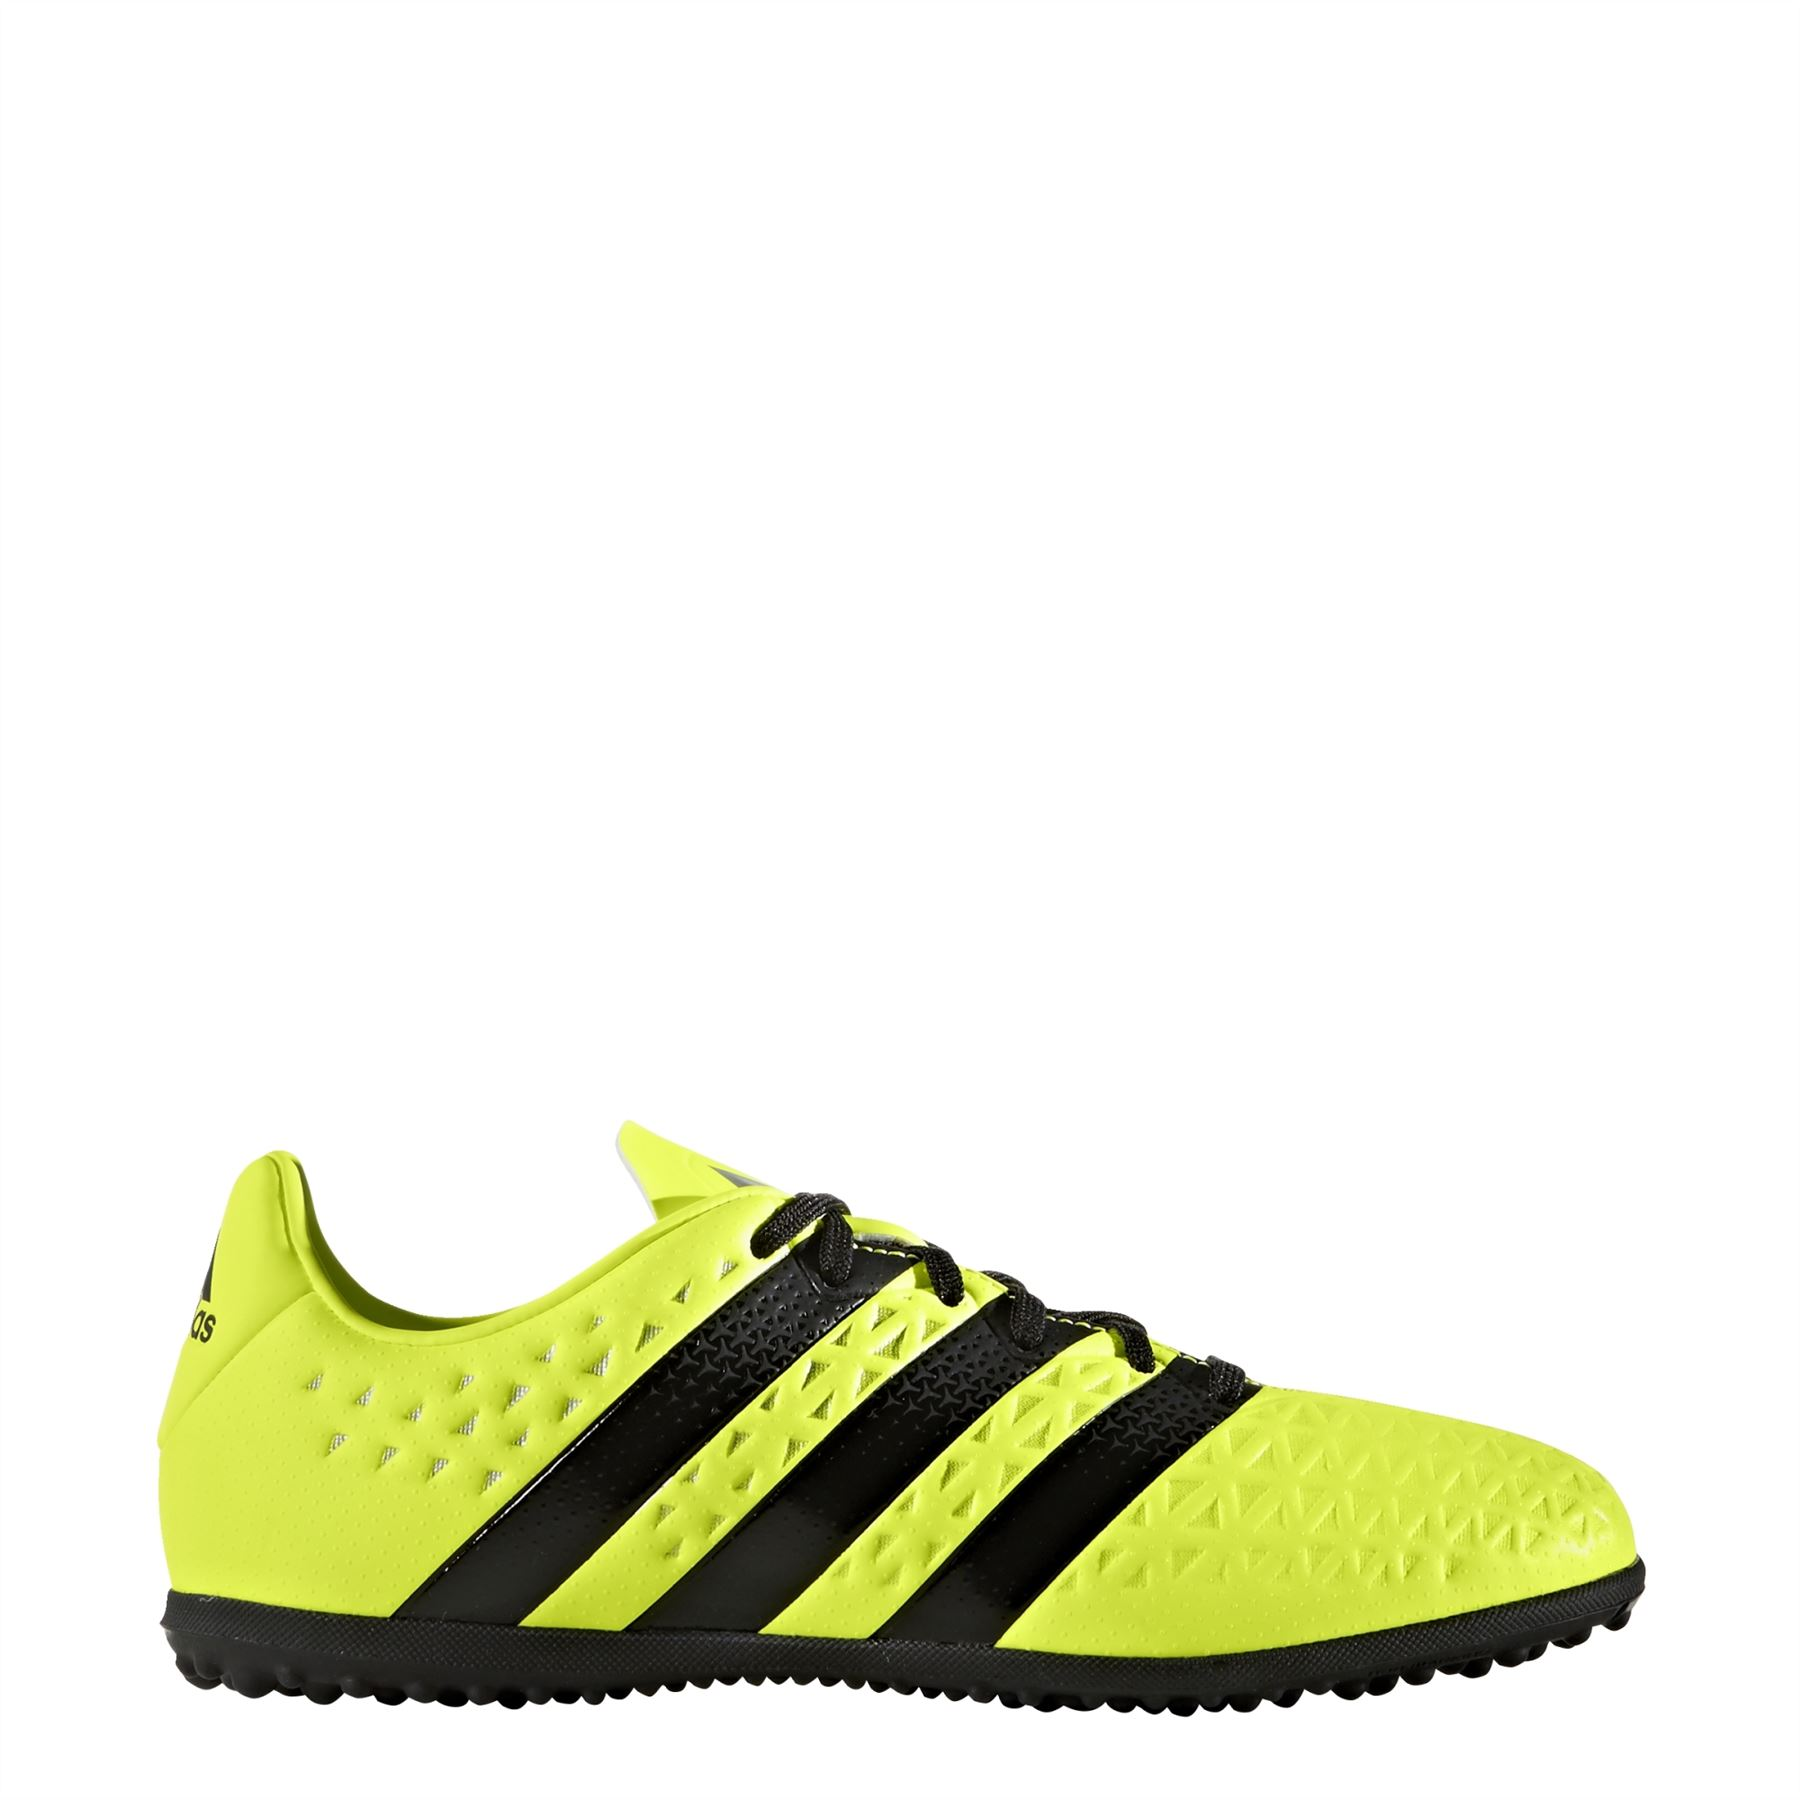 59cbc1c36ee93 adidas Ace 16.3 Astro Turf Football Trainers Juniors Yellow Black Soccer  Shoes